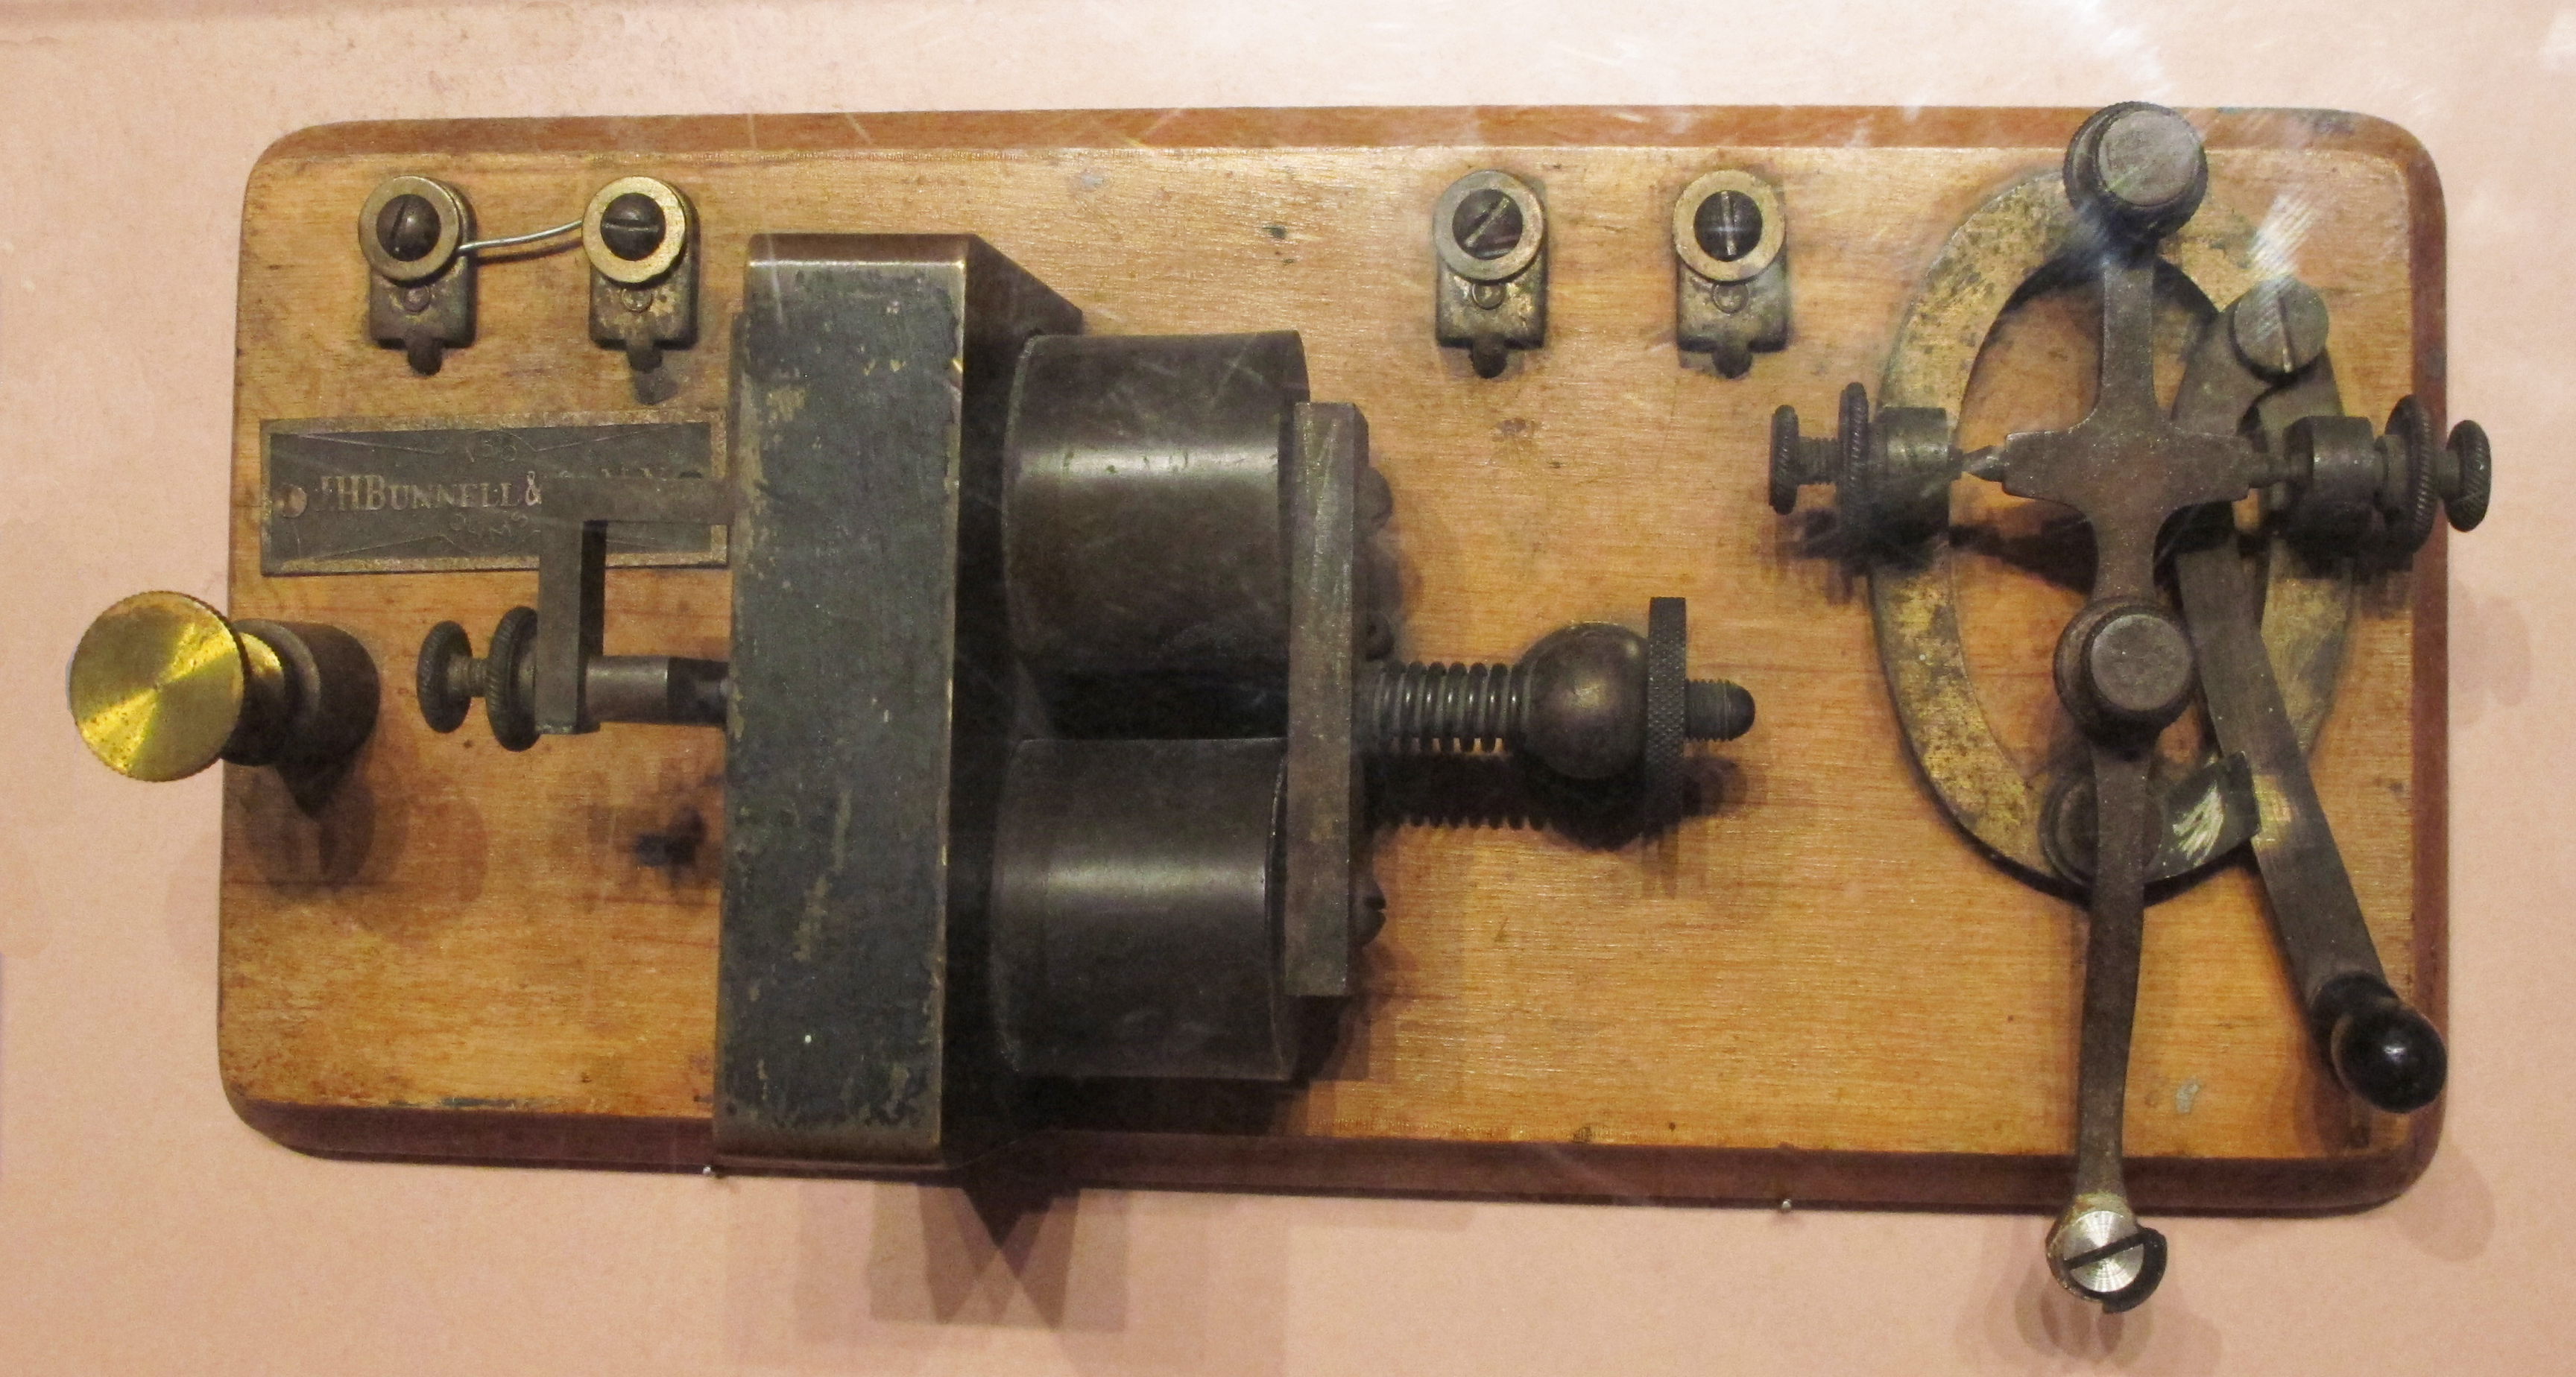 Wiring Diagram Telegraph Key